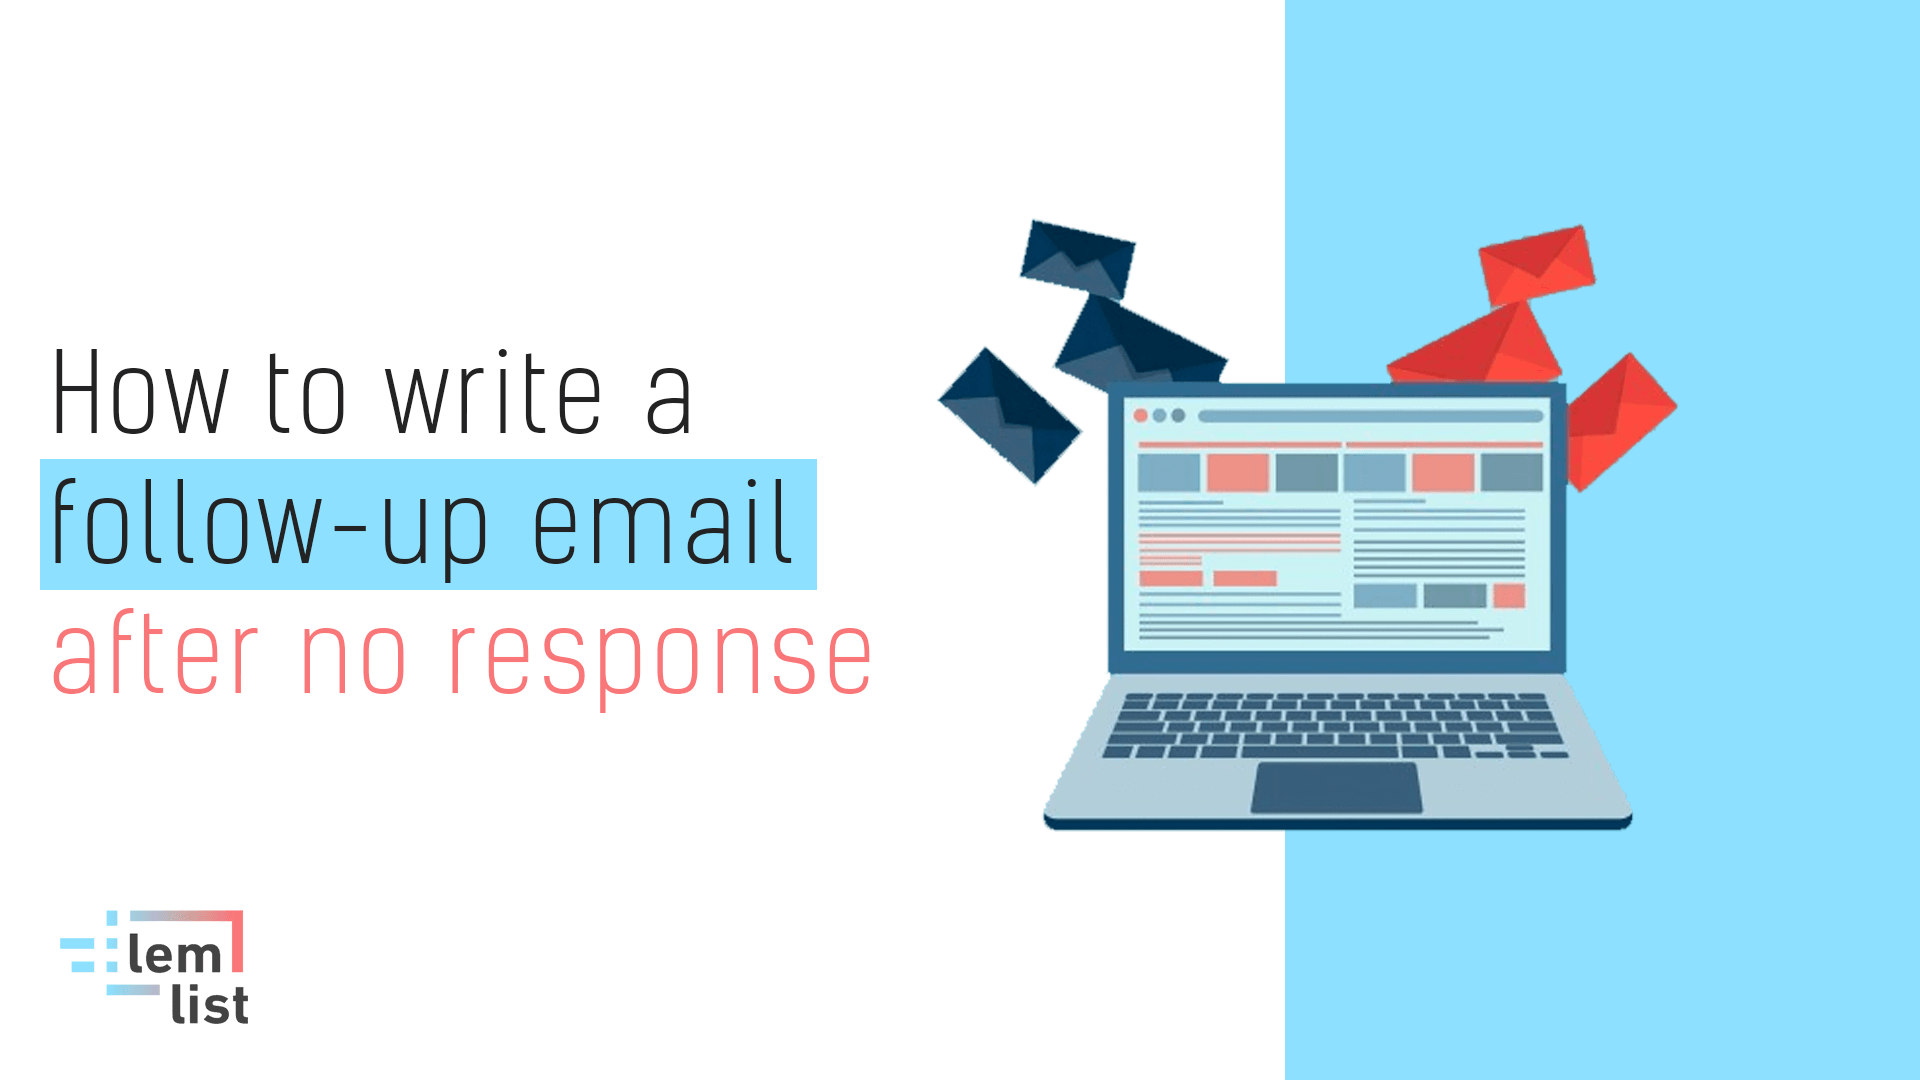 How to write follow-up after no response